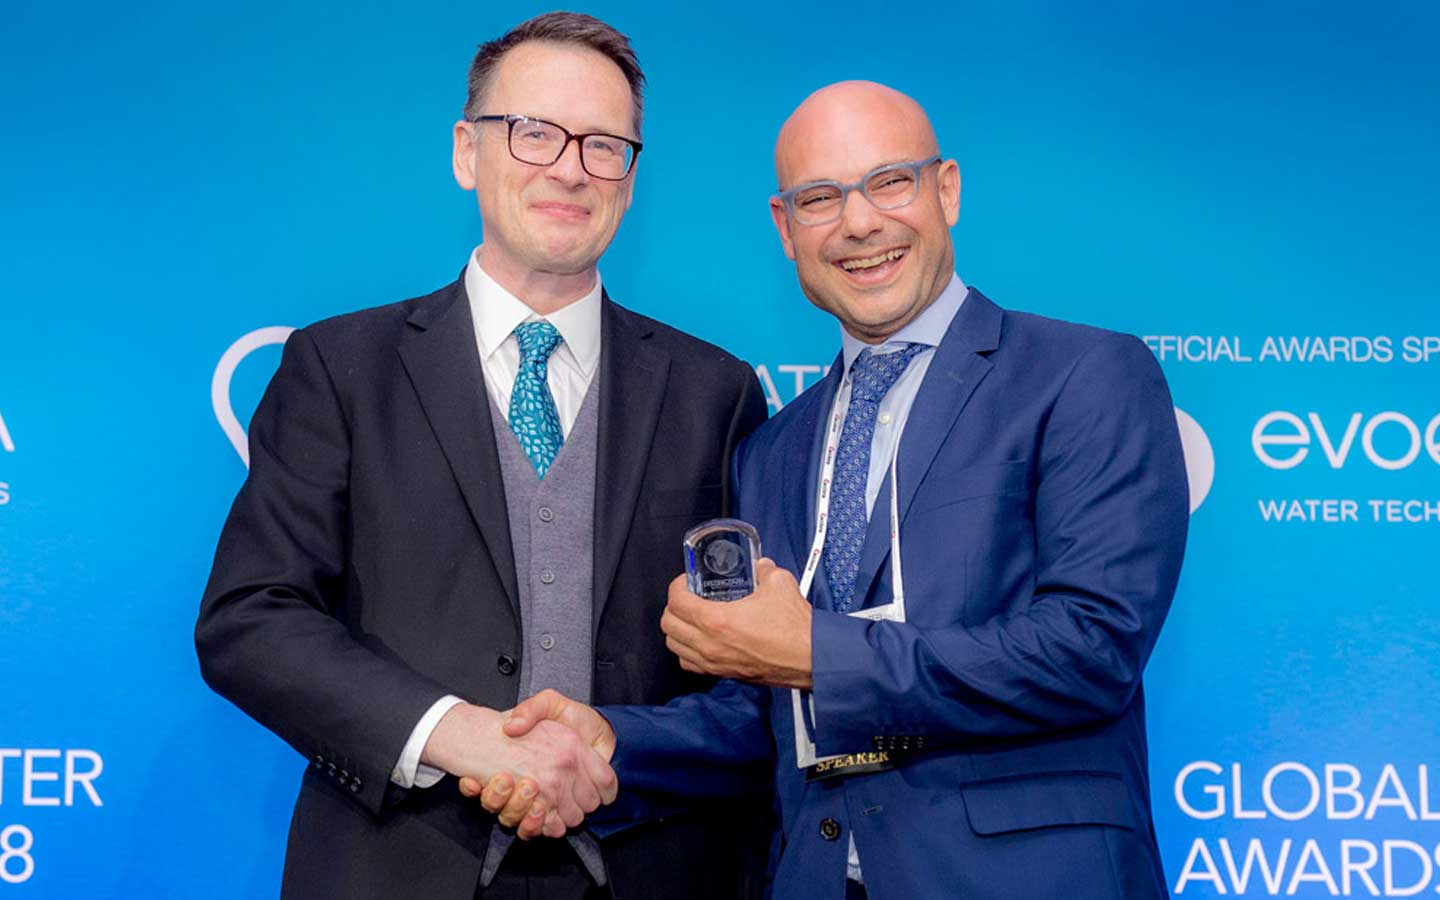 Metito wins 'Water Deal of the Year' and 'Desalination Company of the Year – Distinction' at the prestigious Global Water Awards 2018